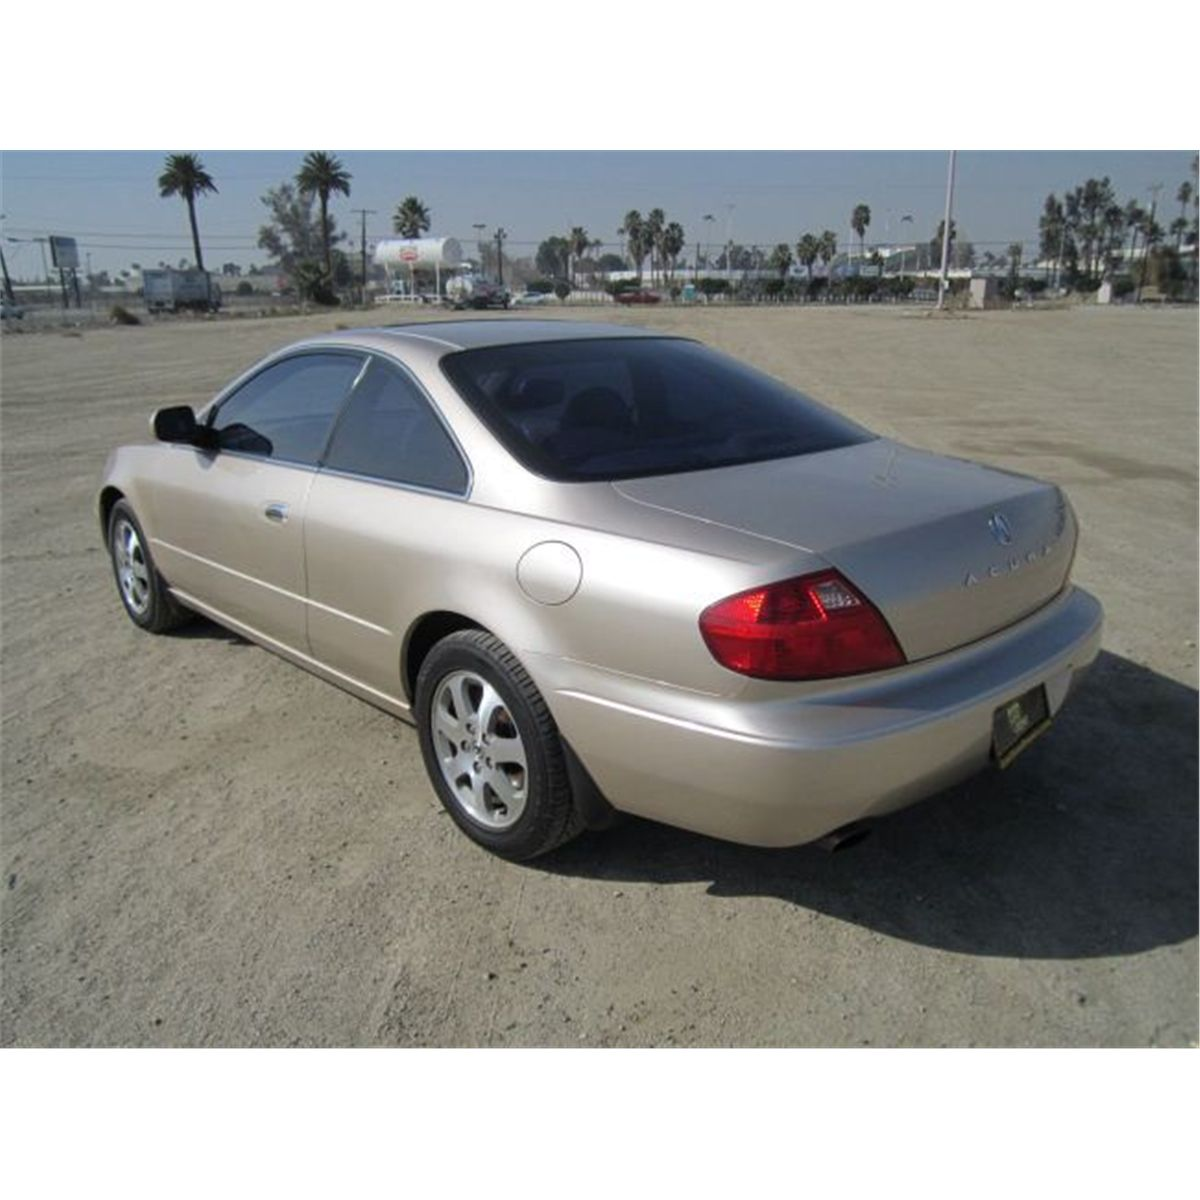 2001 Acura 3.2CL 2-Door Coupe